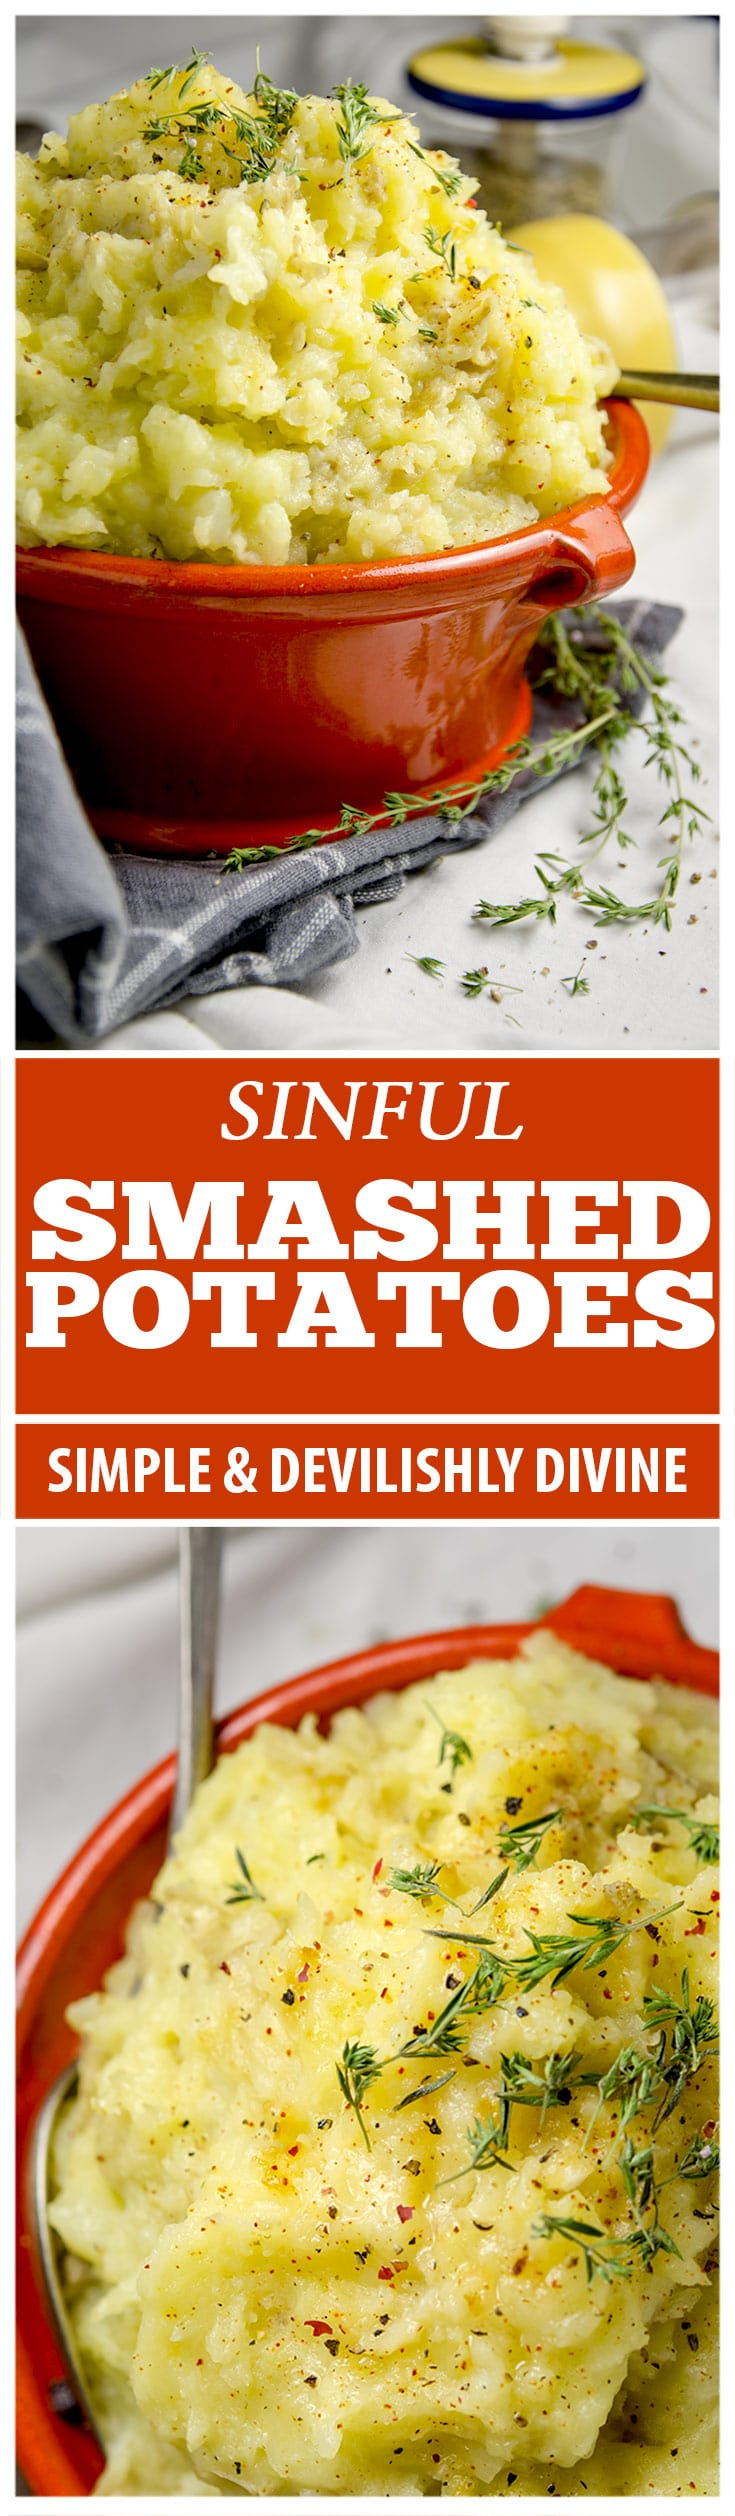 Simple, sinful and devilishly divine...these smashed potatoes are the perfect side dish for any meal.